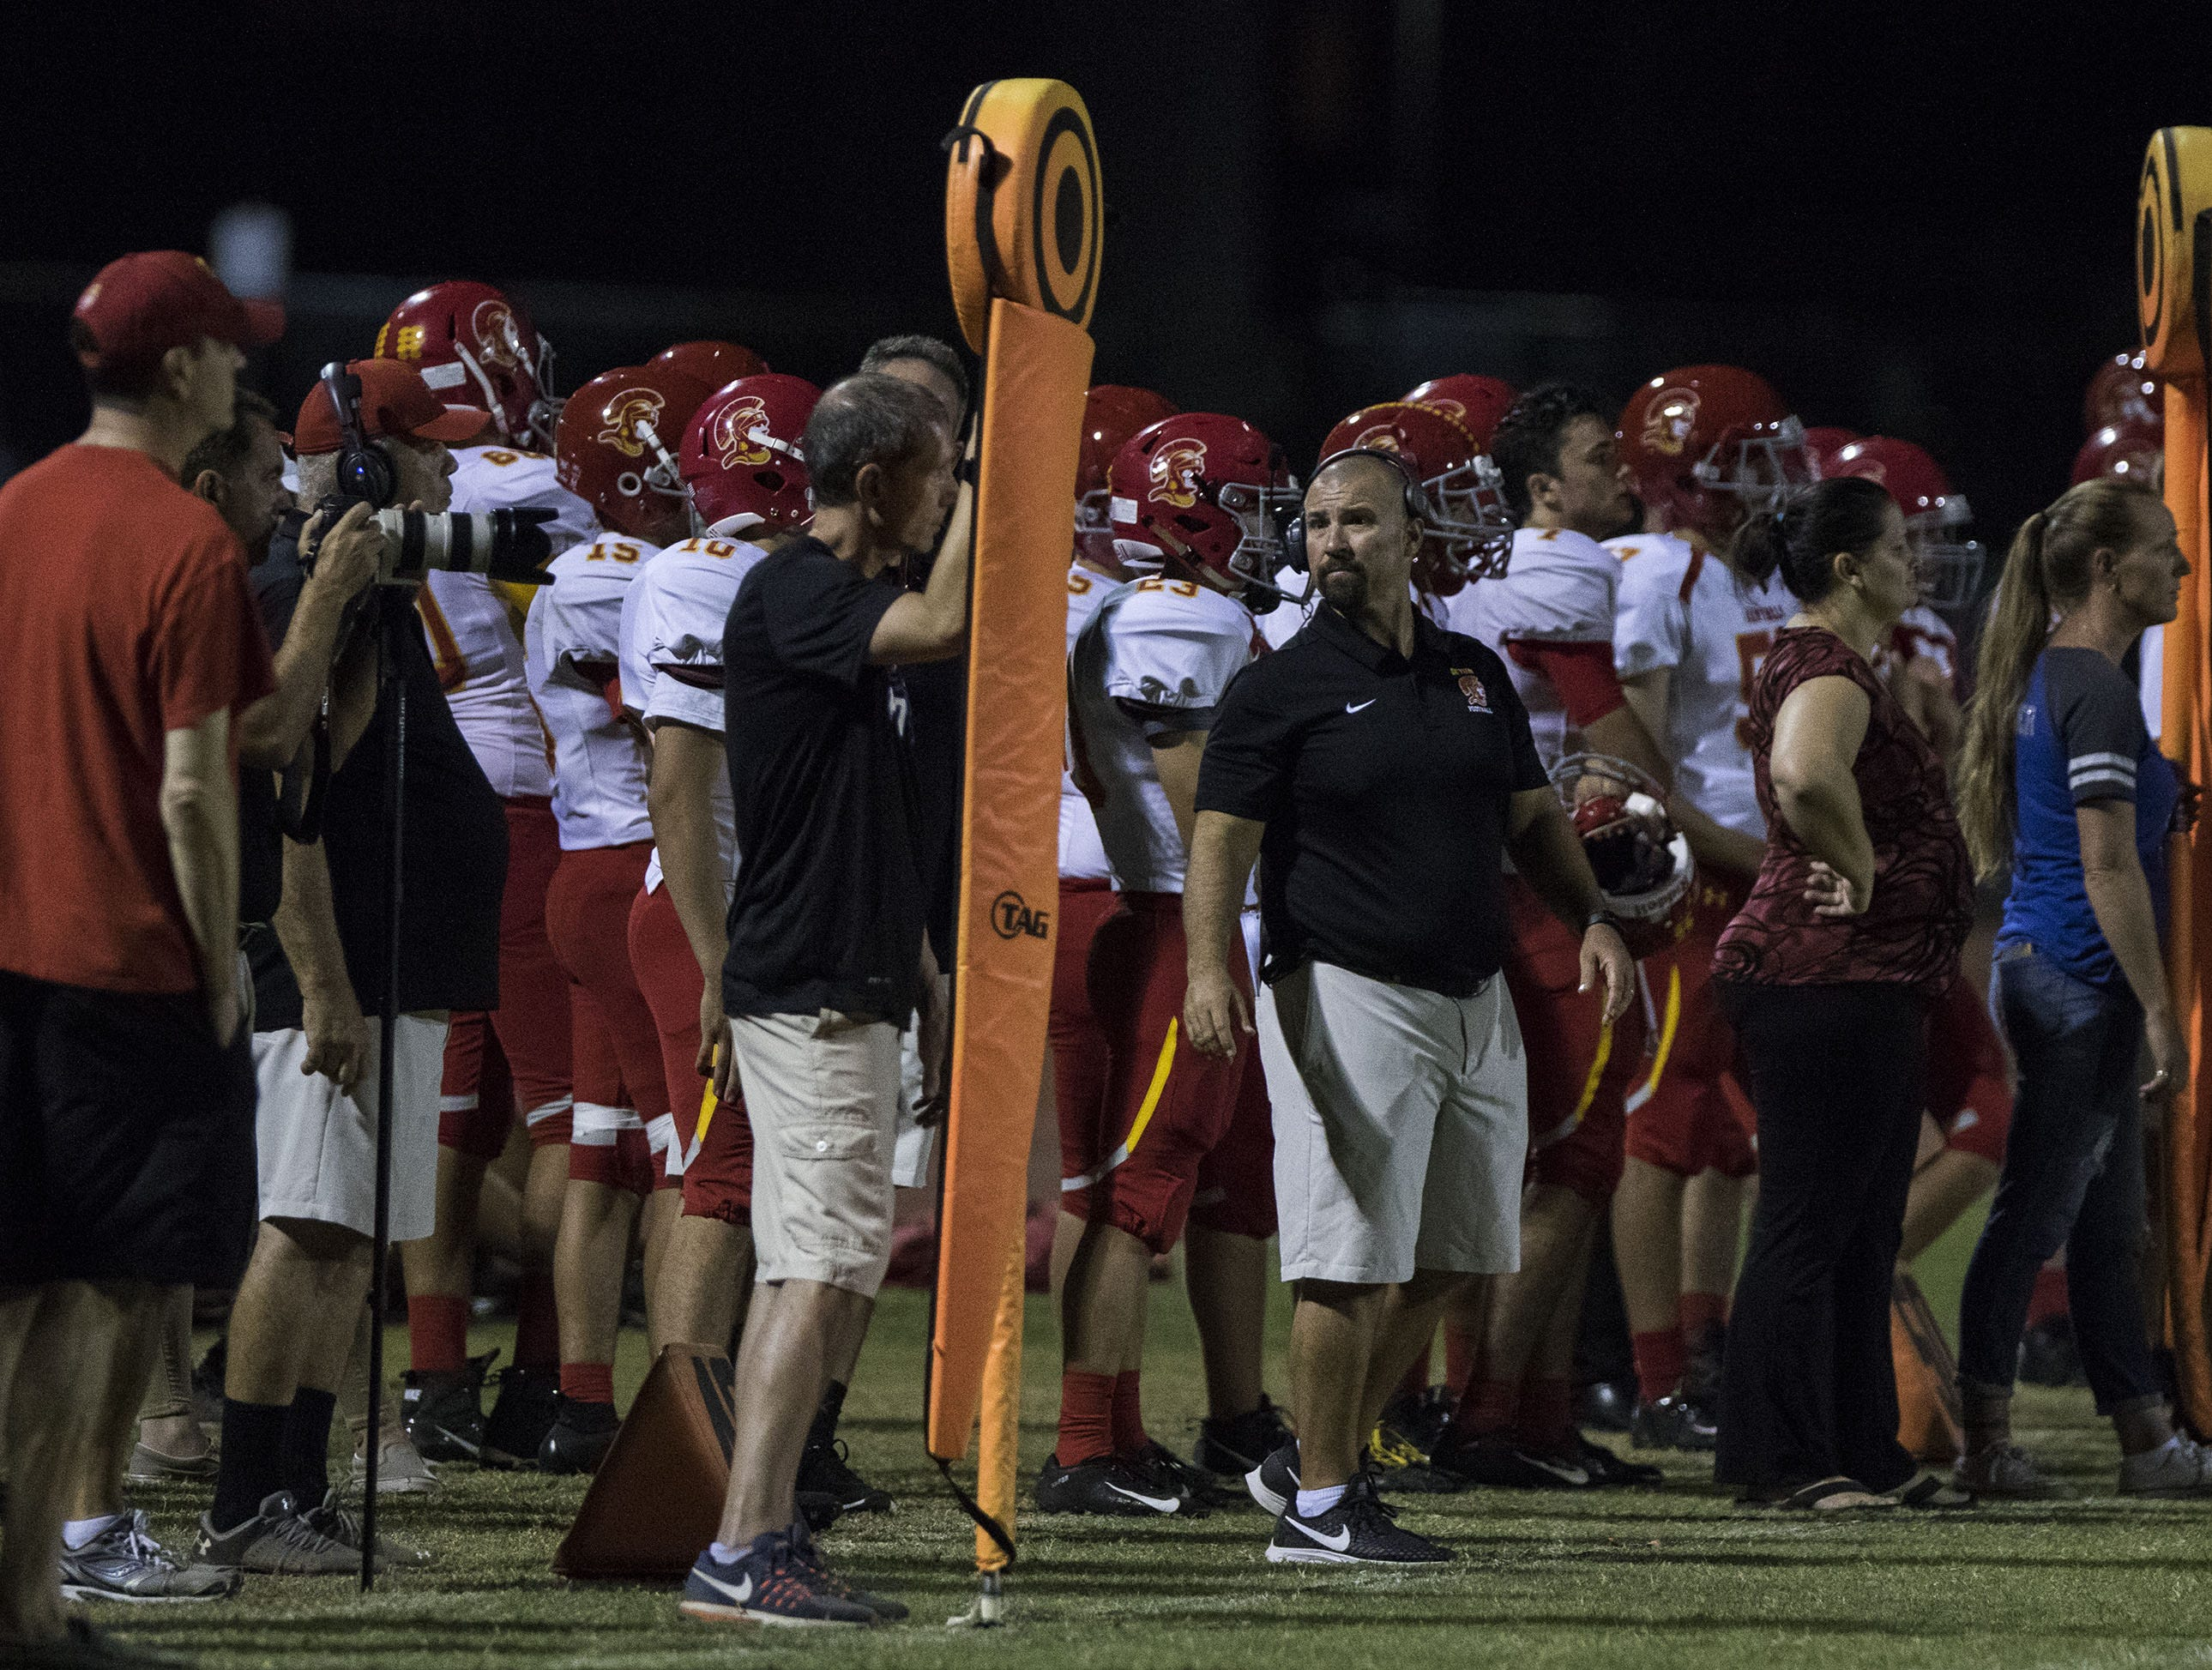 Seton's sideline during their game against Mesquite in Gilbert Friday, Sept. 21, 2018. #azhsfb